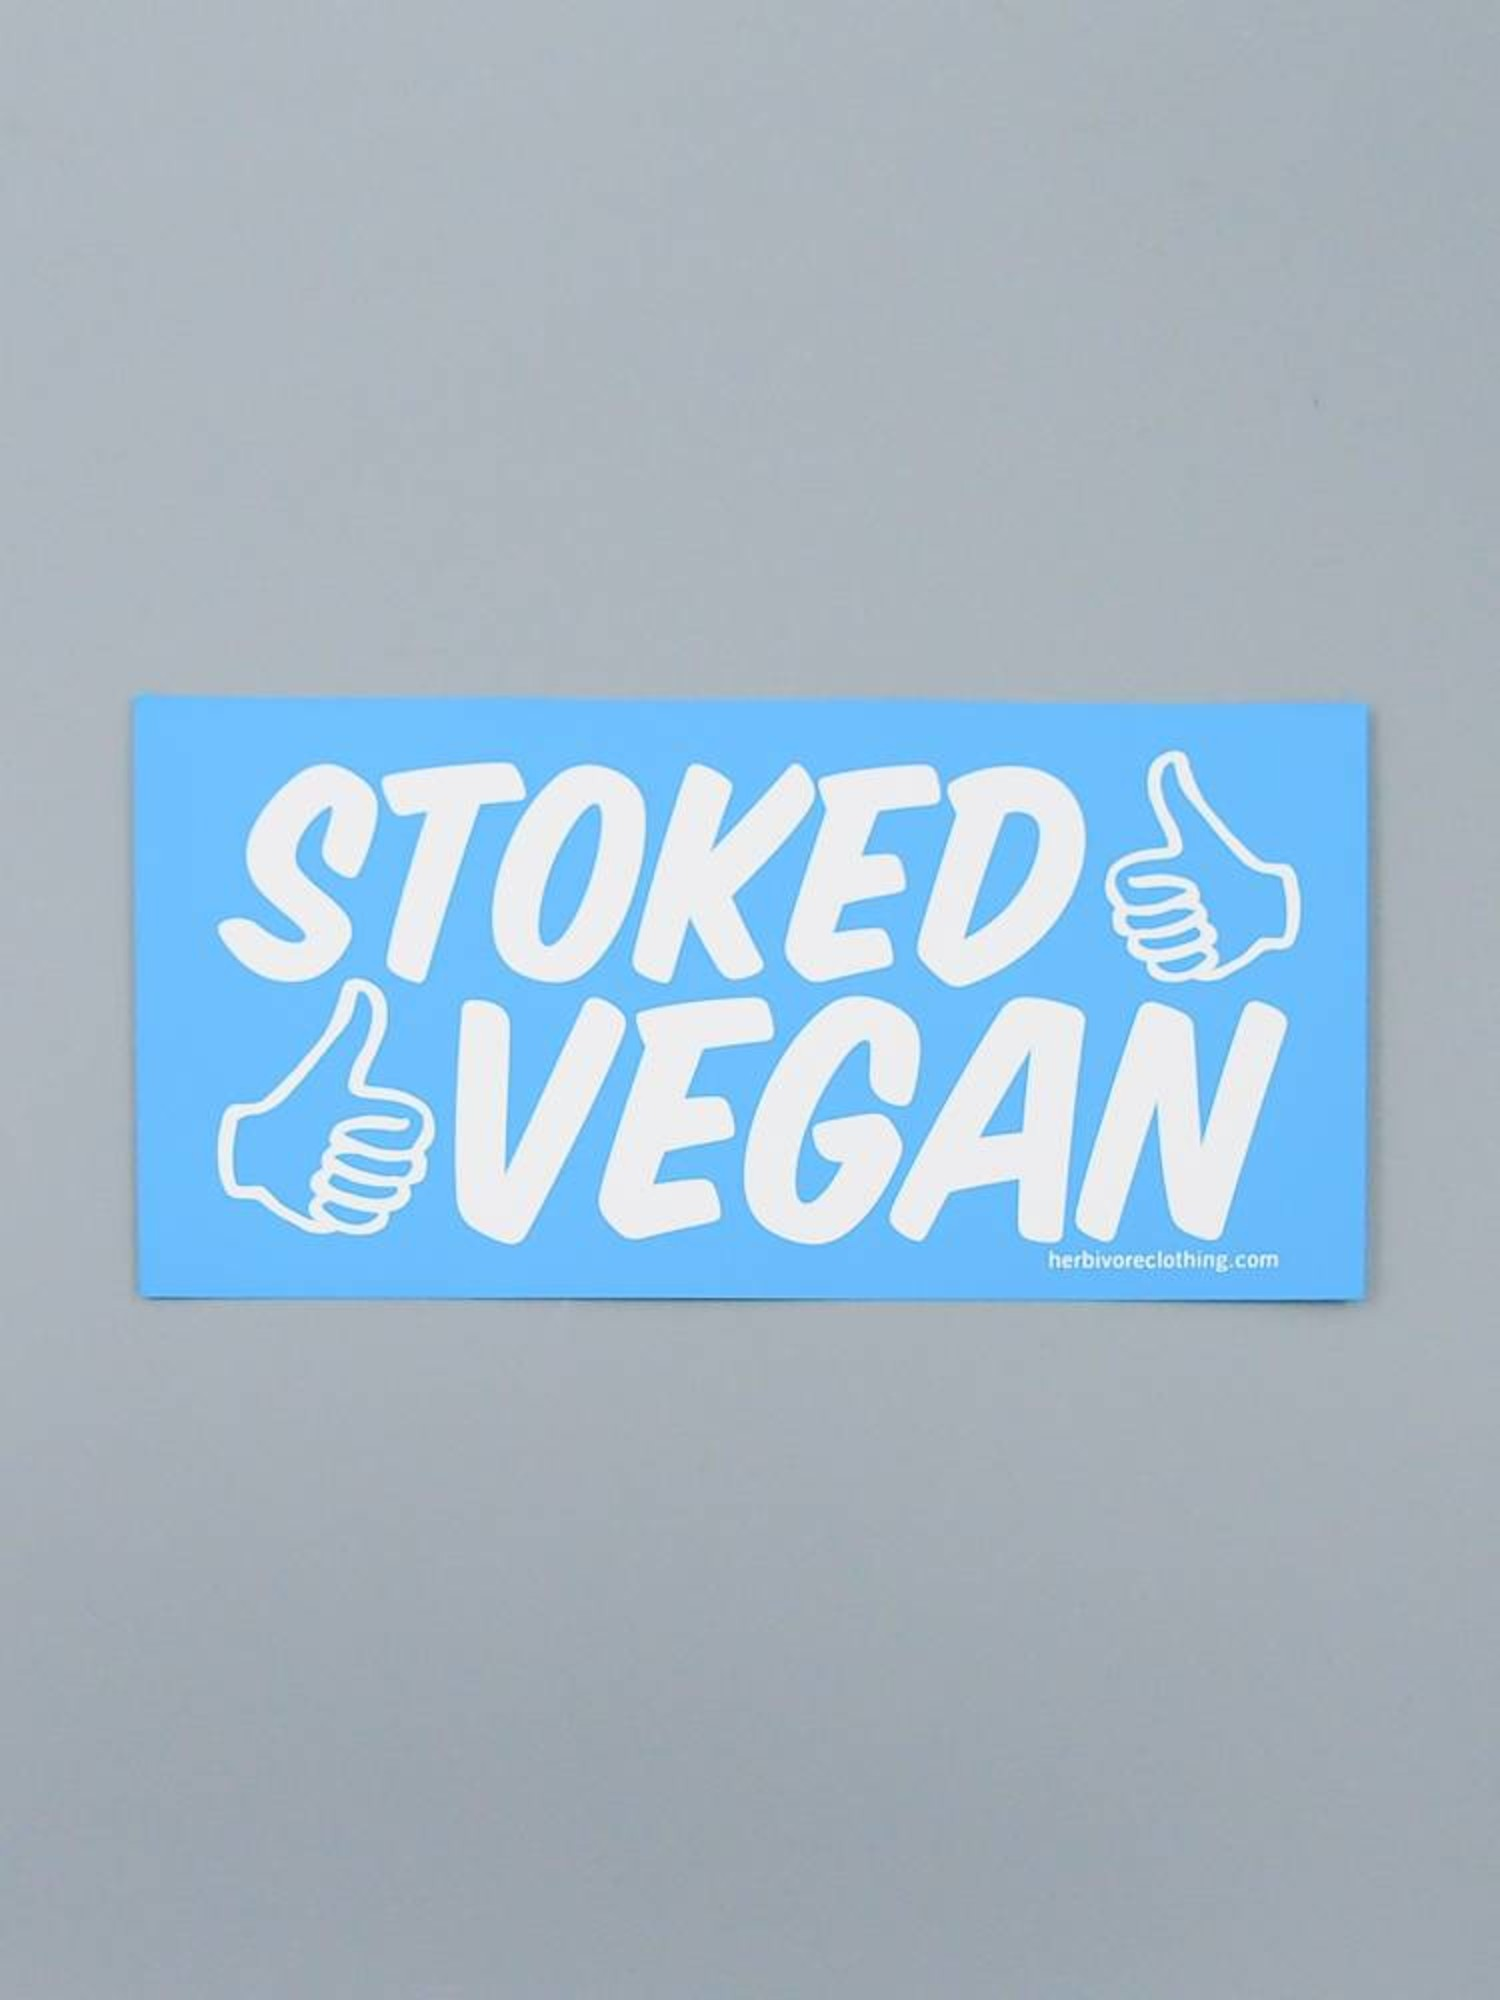 Stoked Vegan (Two Thumbs) Bumper Sticker - The Herbivore Clothing Co